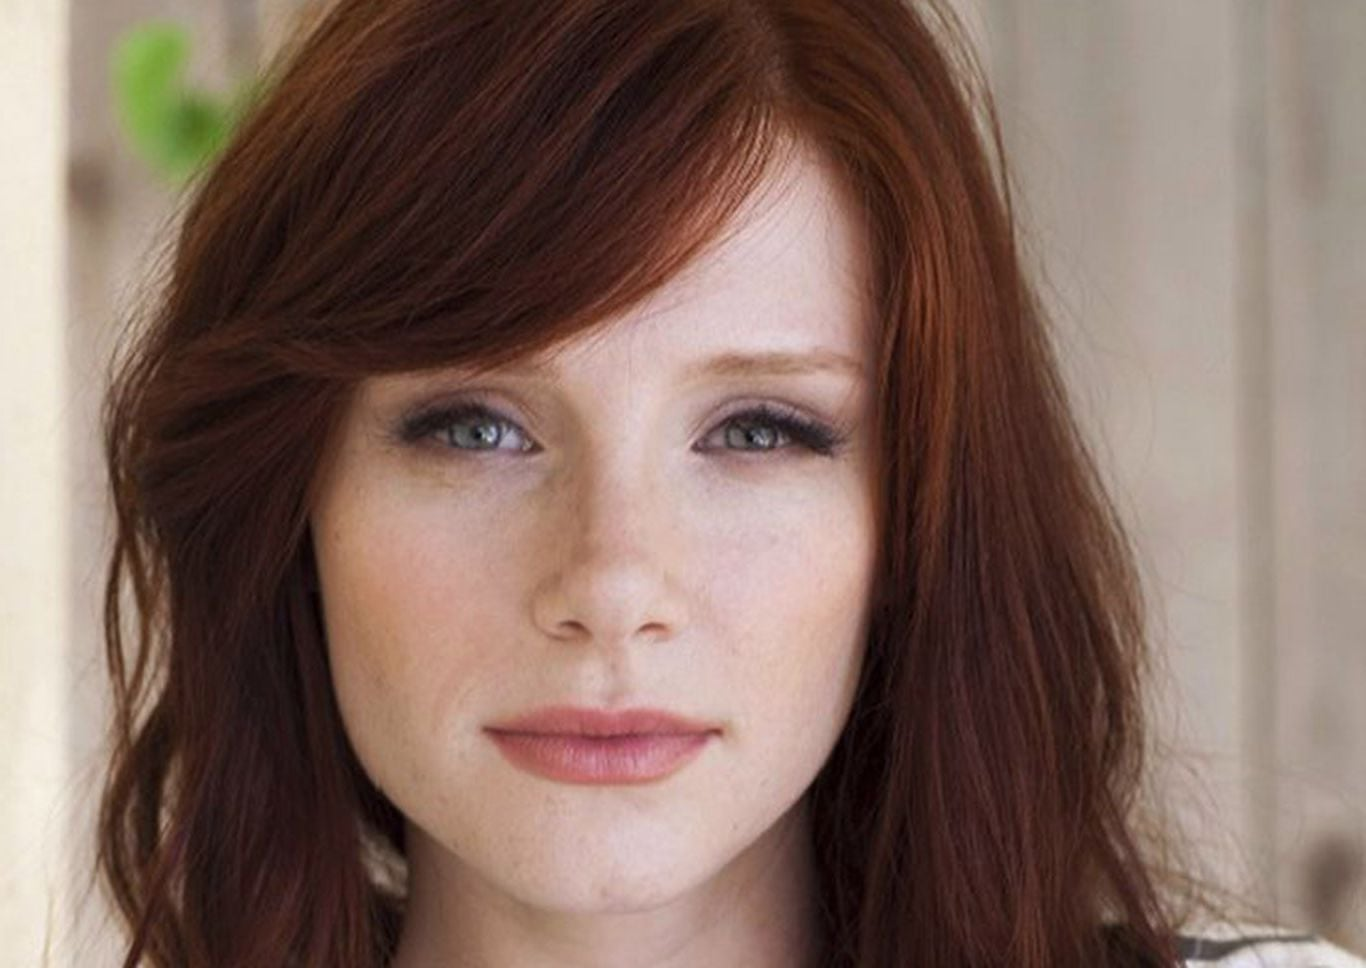 eyes of Bryce Dallas Howard